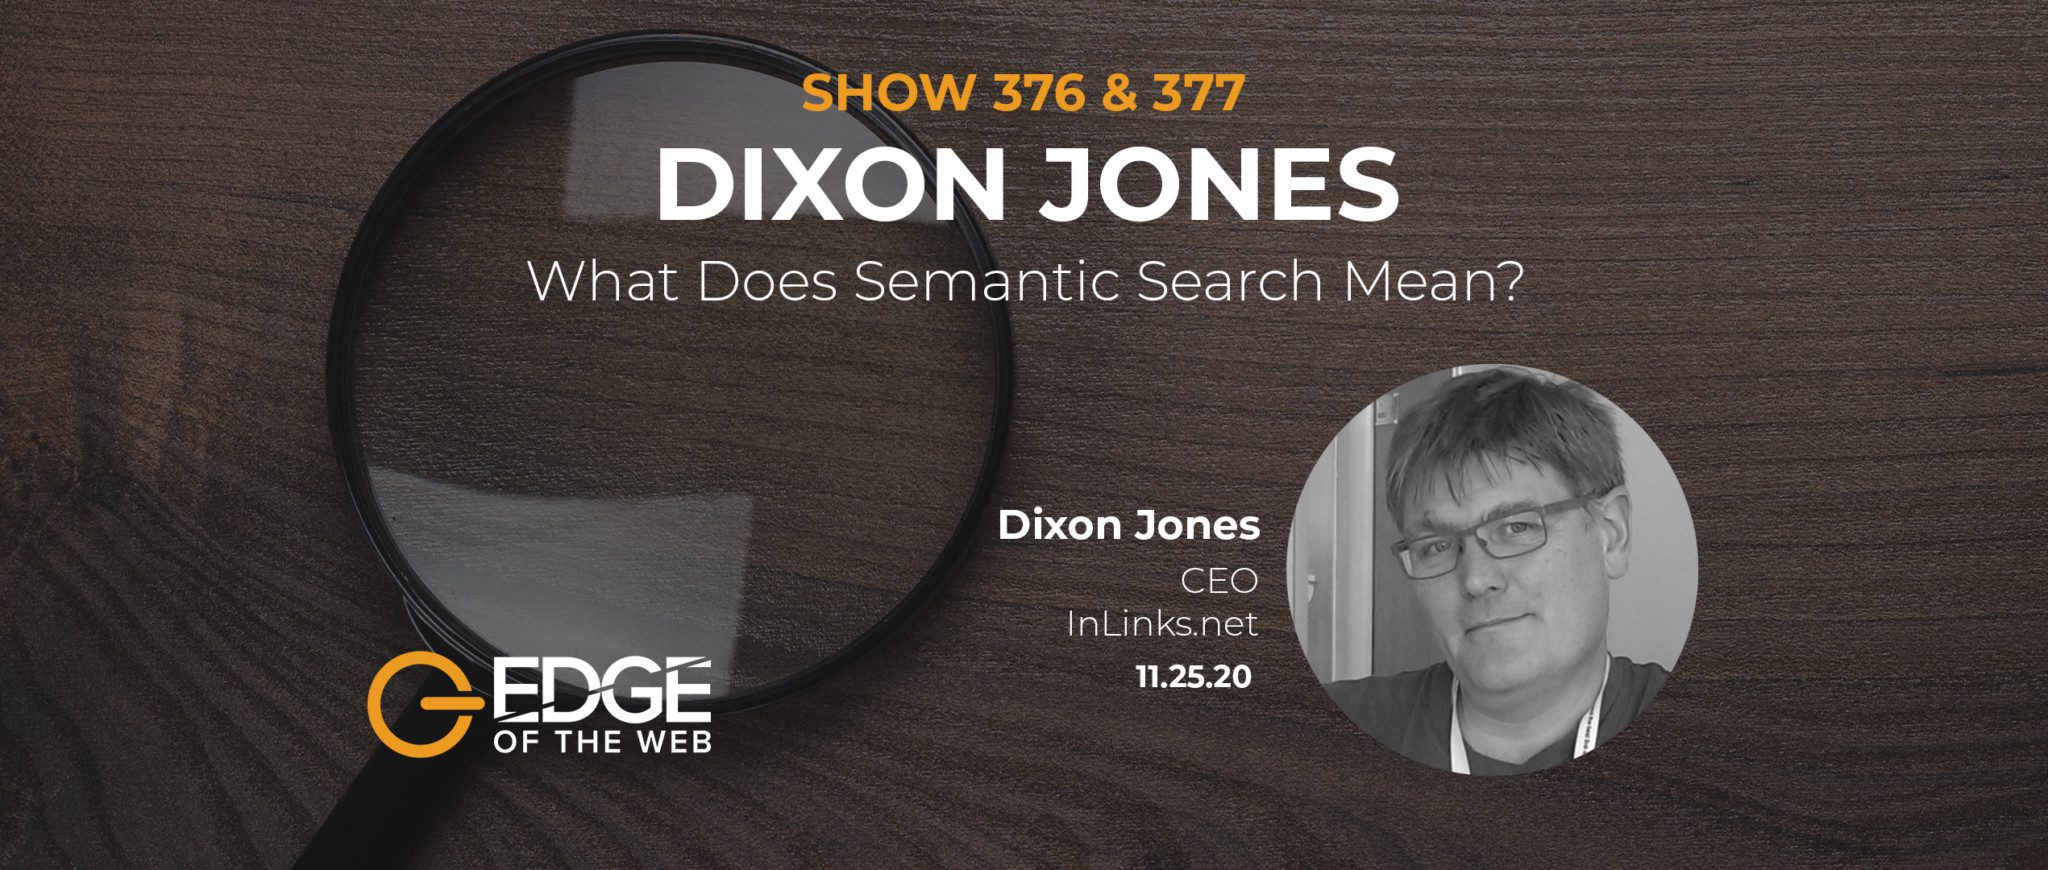 376 & 377 | What Does Semantic Search Mean? with Dixon Jones